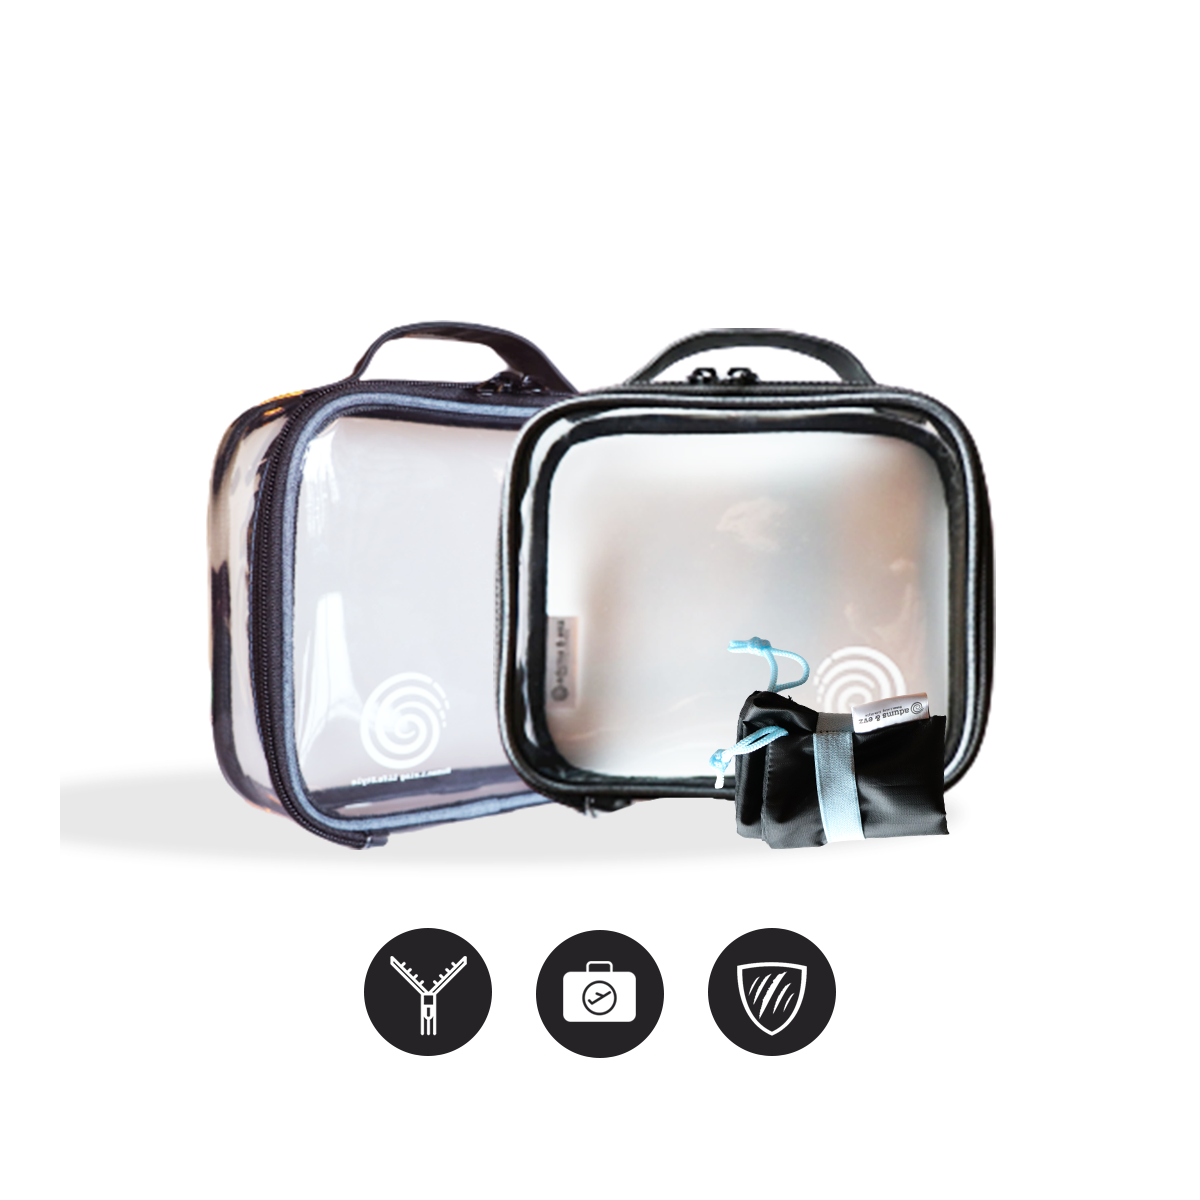 Clear Toiletry Bag for Traveling & Packing Cubes | Quart Size Pouch Size Pouchfor Makeup Essentials Toiletries for Men & Women | TSA Approved Organizer [ Set with FREE Shoe BAG ]